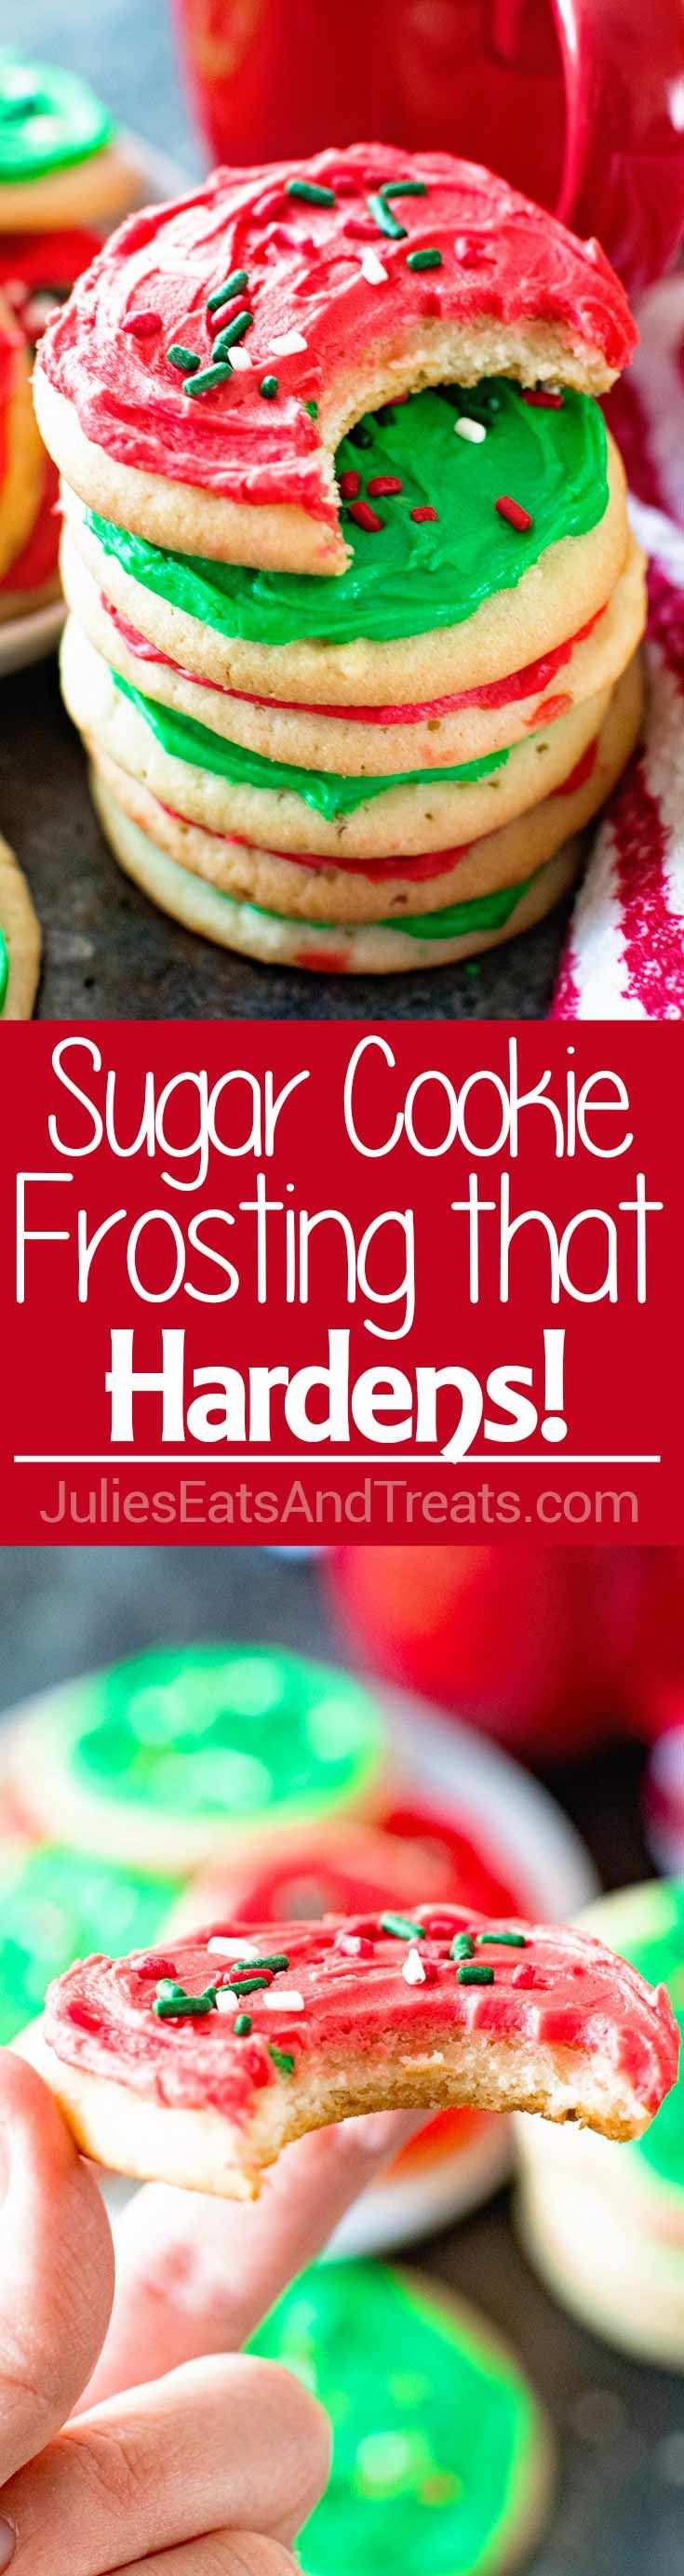 Homemade Sugar Cookie Frosting that Hardens ~ The Perfect Sugar Cookie Frosting for Decorating! If You Are Looking for Frosting For Sugar Cookies that Hardens this is it! via @julieseats